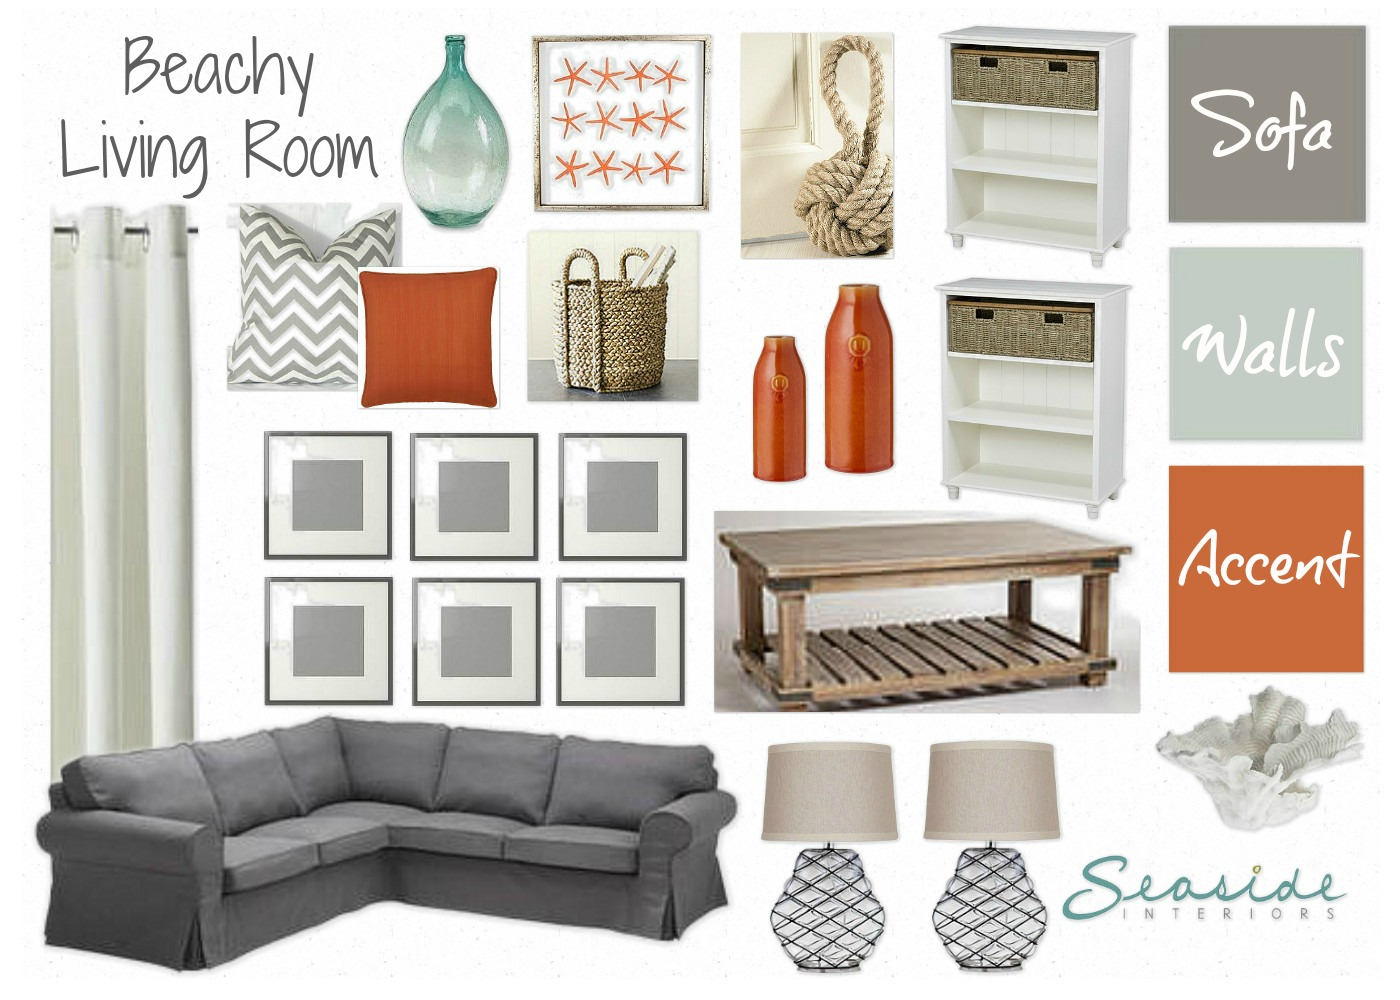 Seaside Interiors Beachy Living Room With Grays And Orange